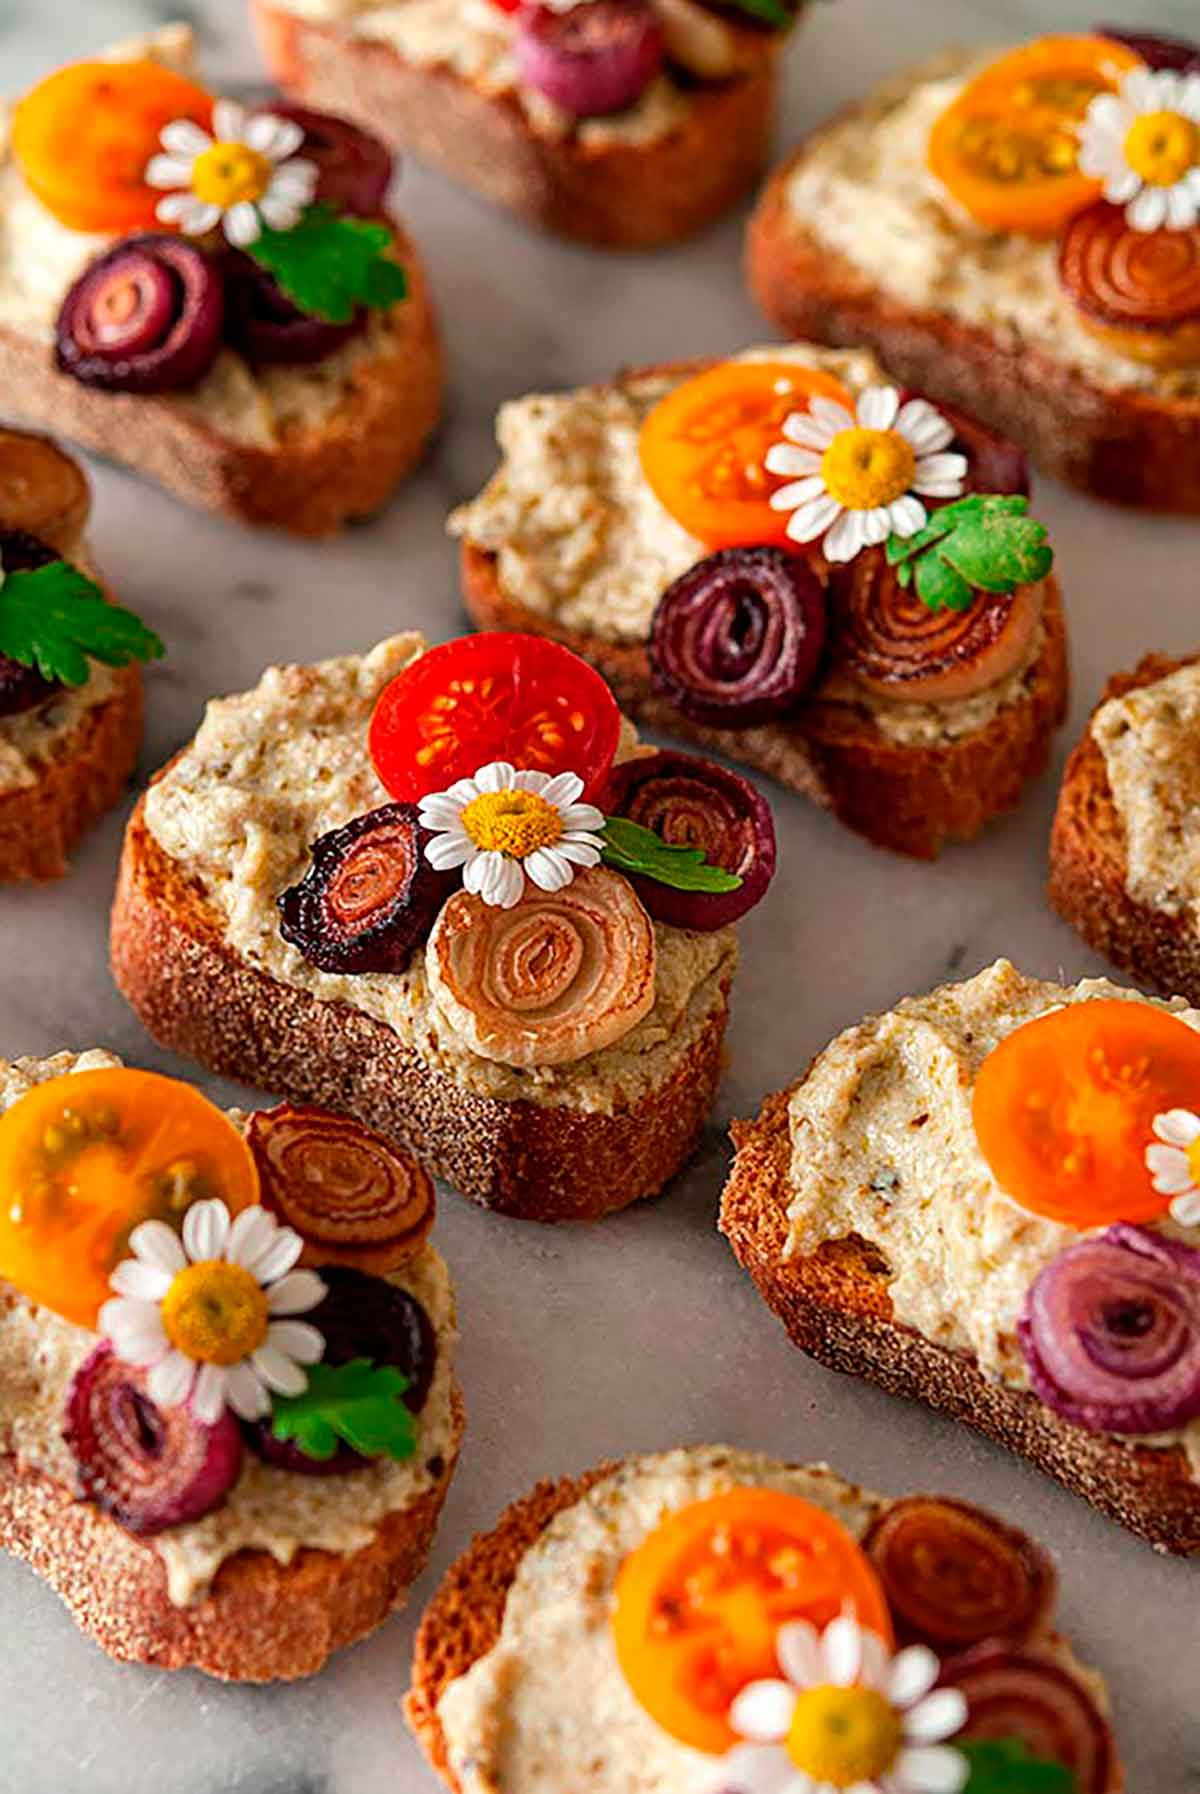 11 crostini garnished with daisies, onions and tomatoes on a marble plate.